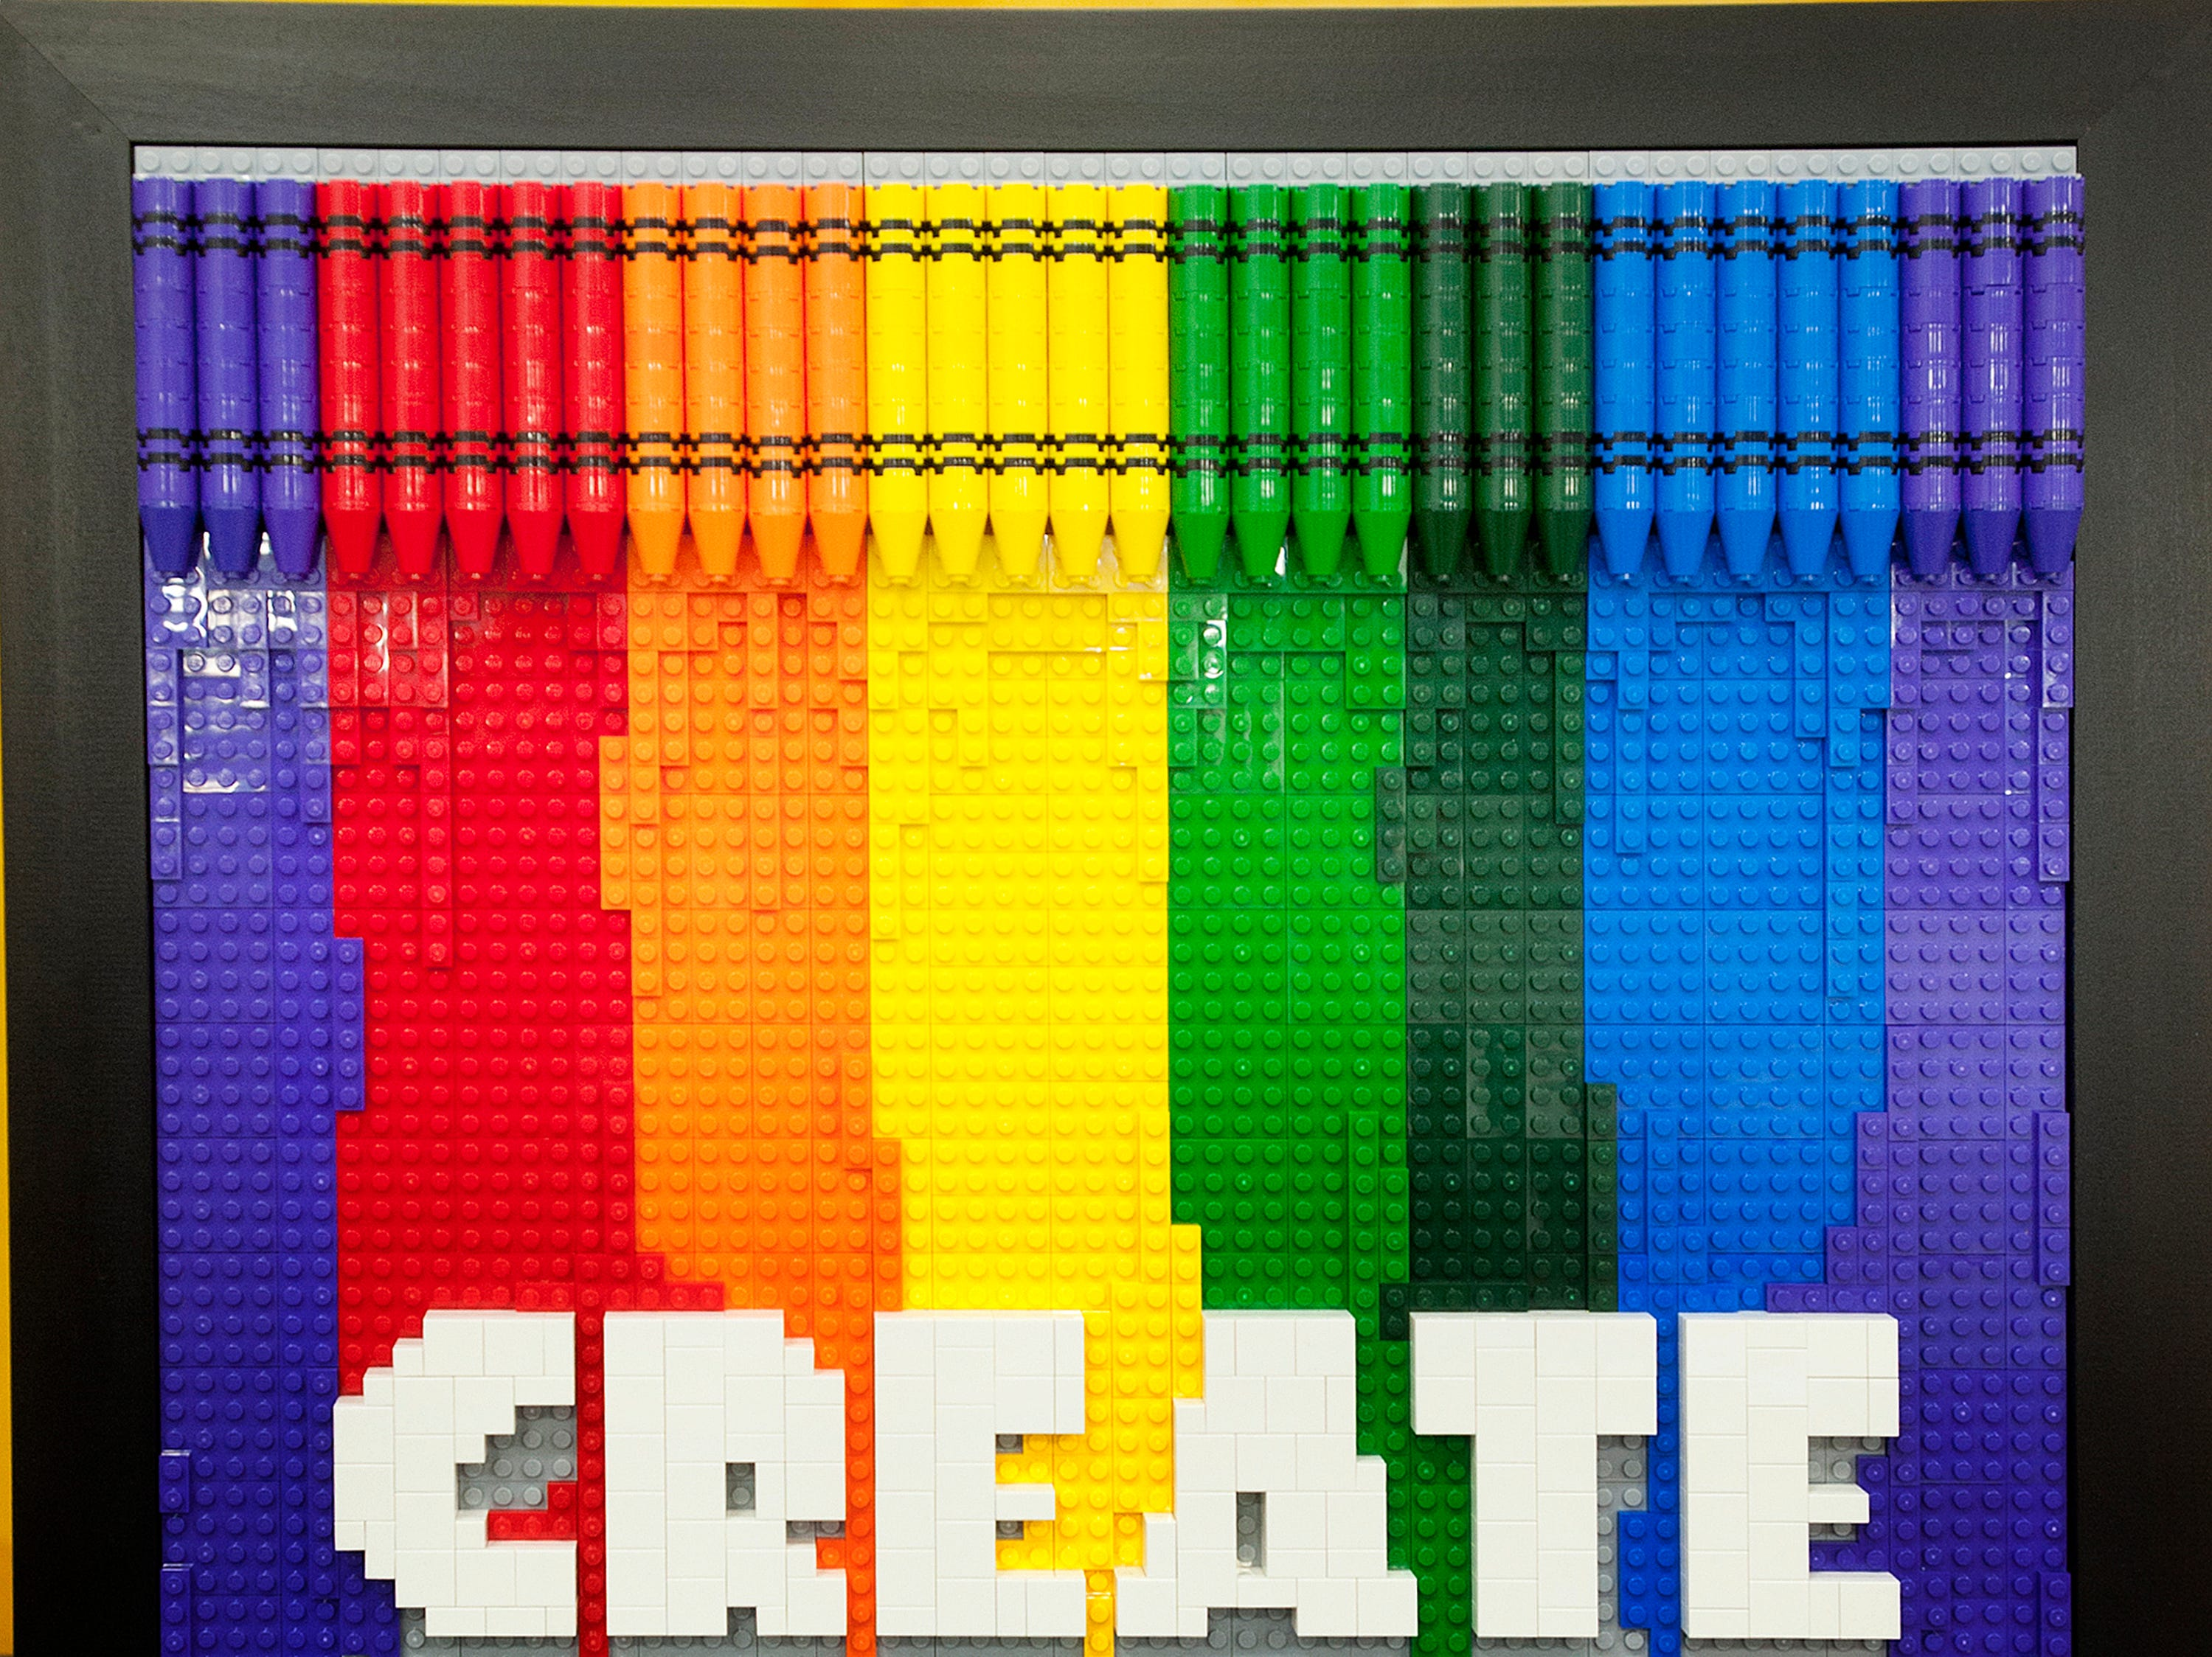 Crayons and colors in a Lego-simulated drawing is on display at the BrickUniverse Lego Fan Convention at the Kentucky International Convention Center in downtown Louisville.19 January 2019